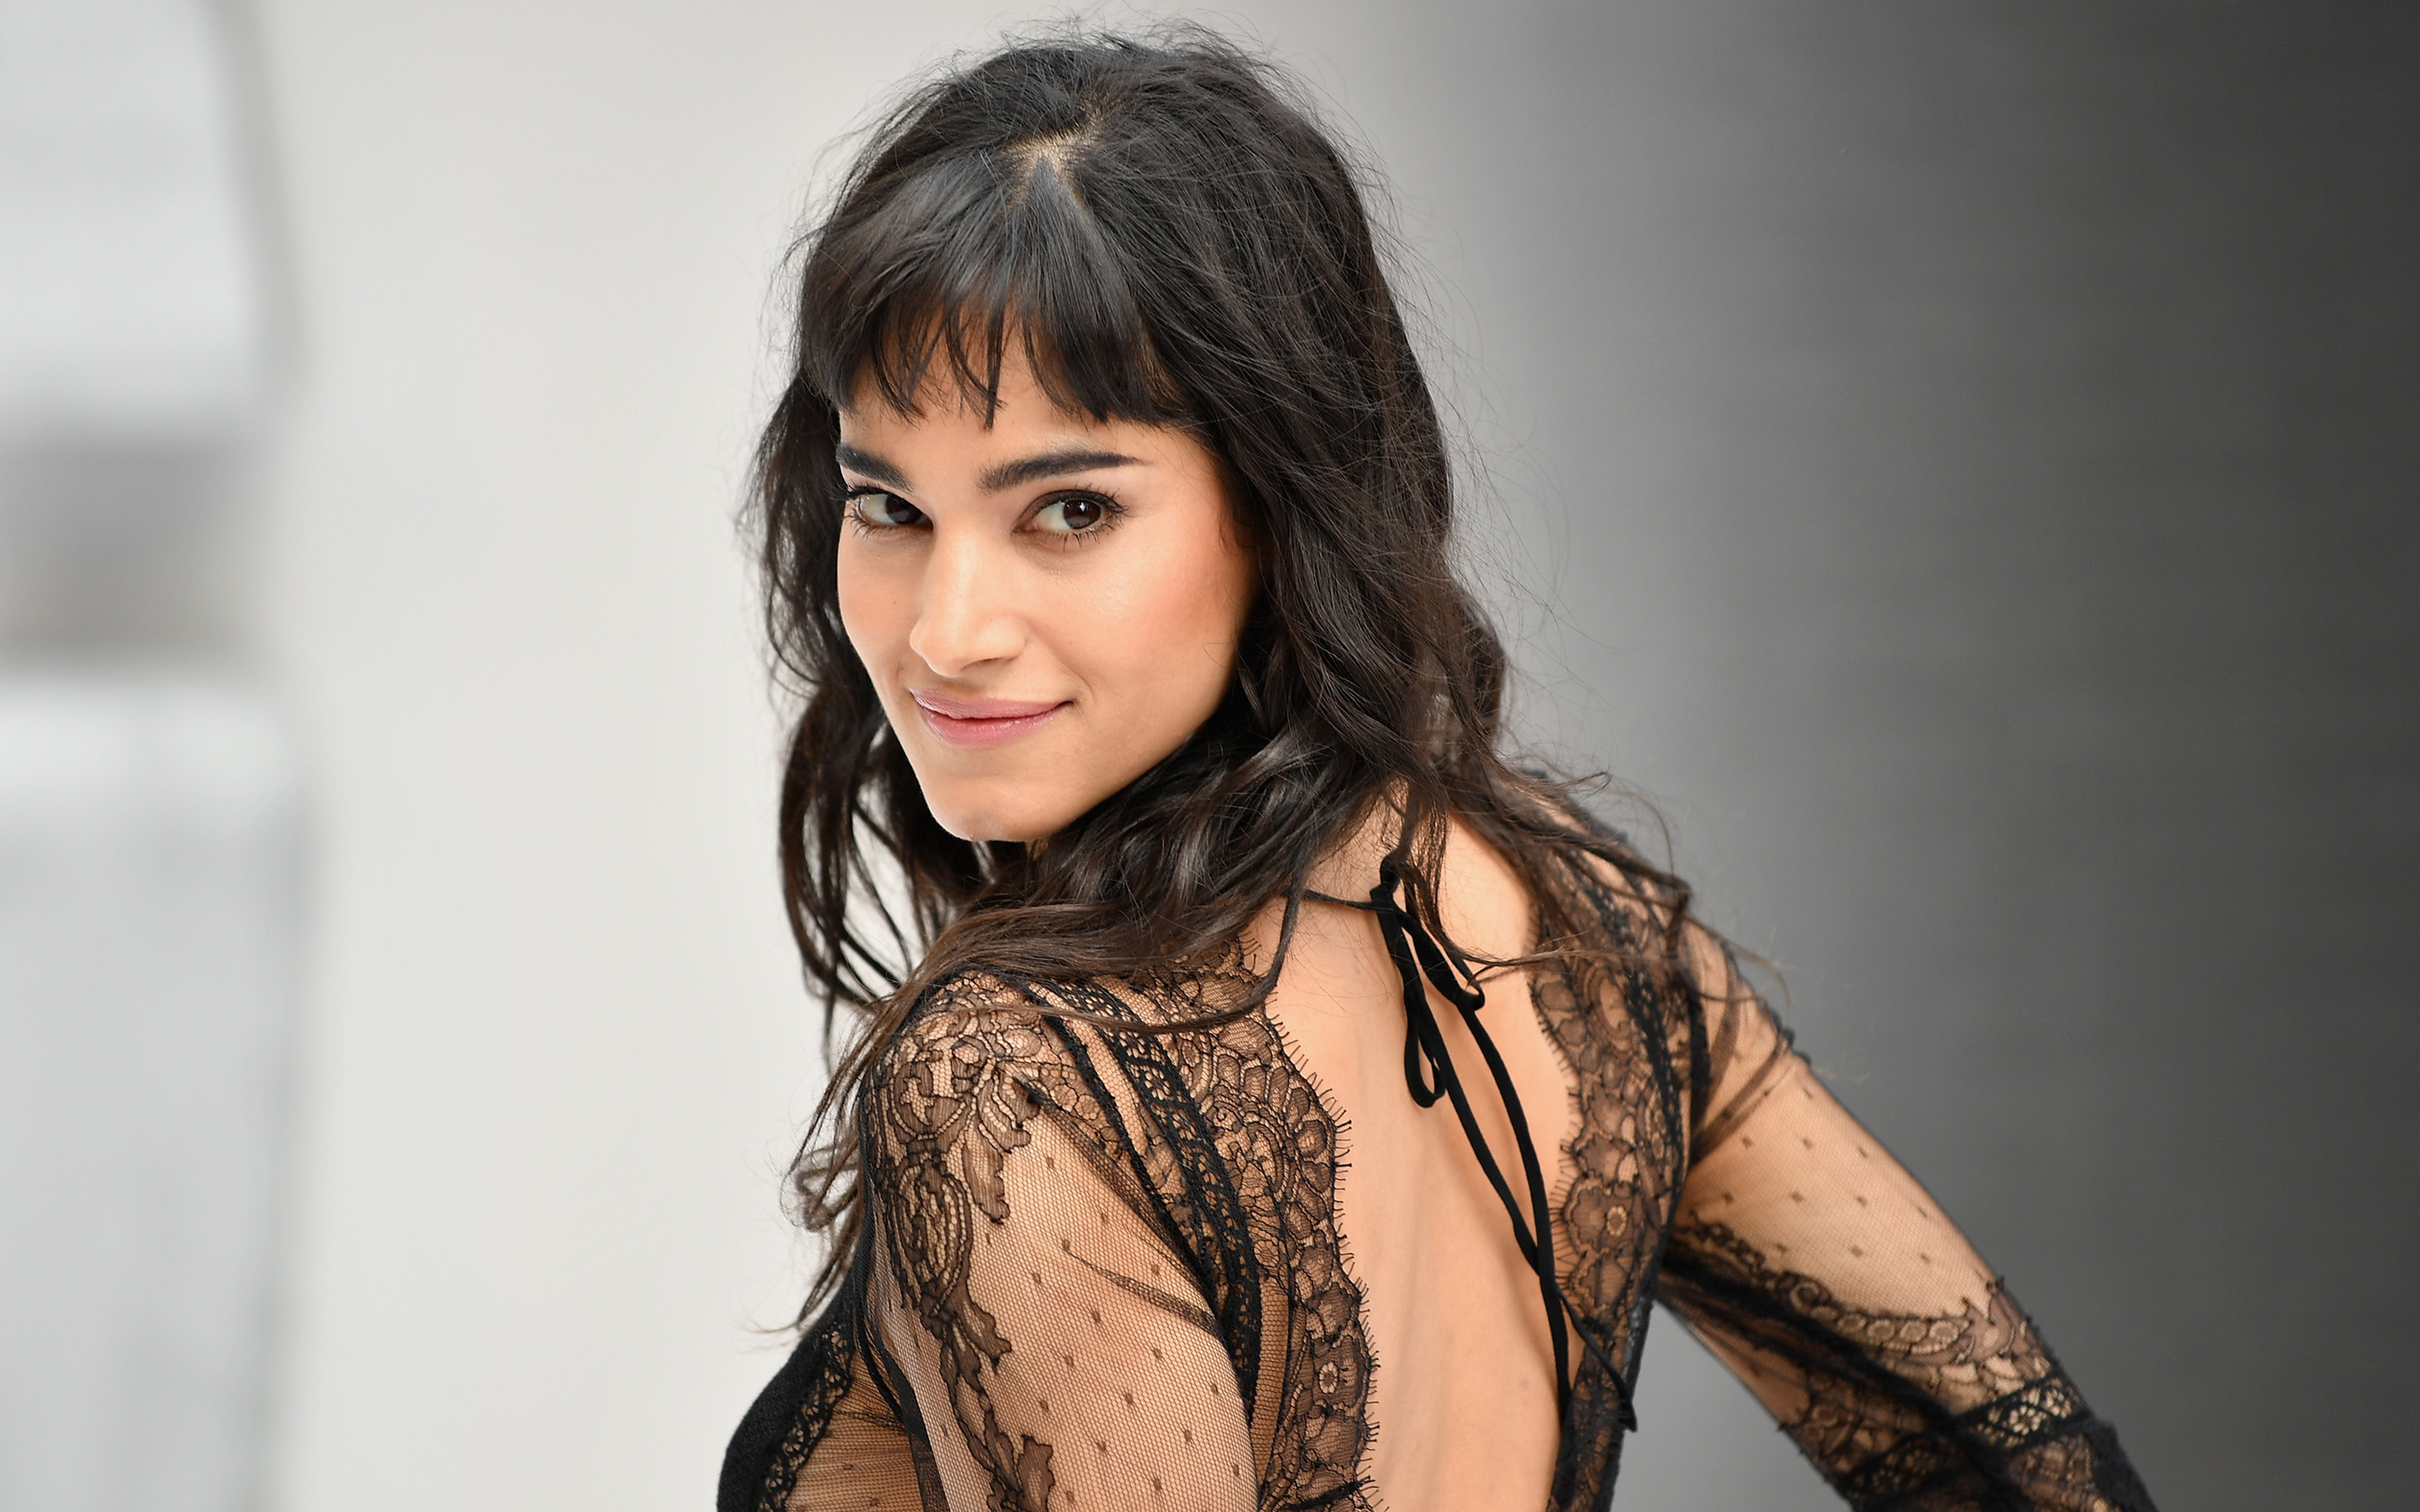 Sofia Boutella Star Trek Beyond Jaylah обои скачать